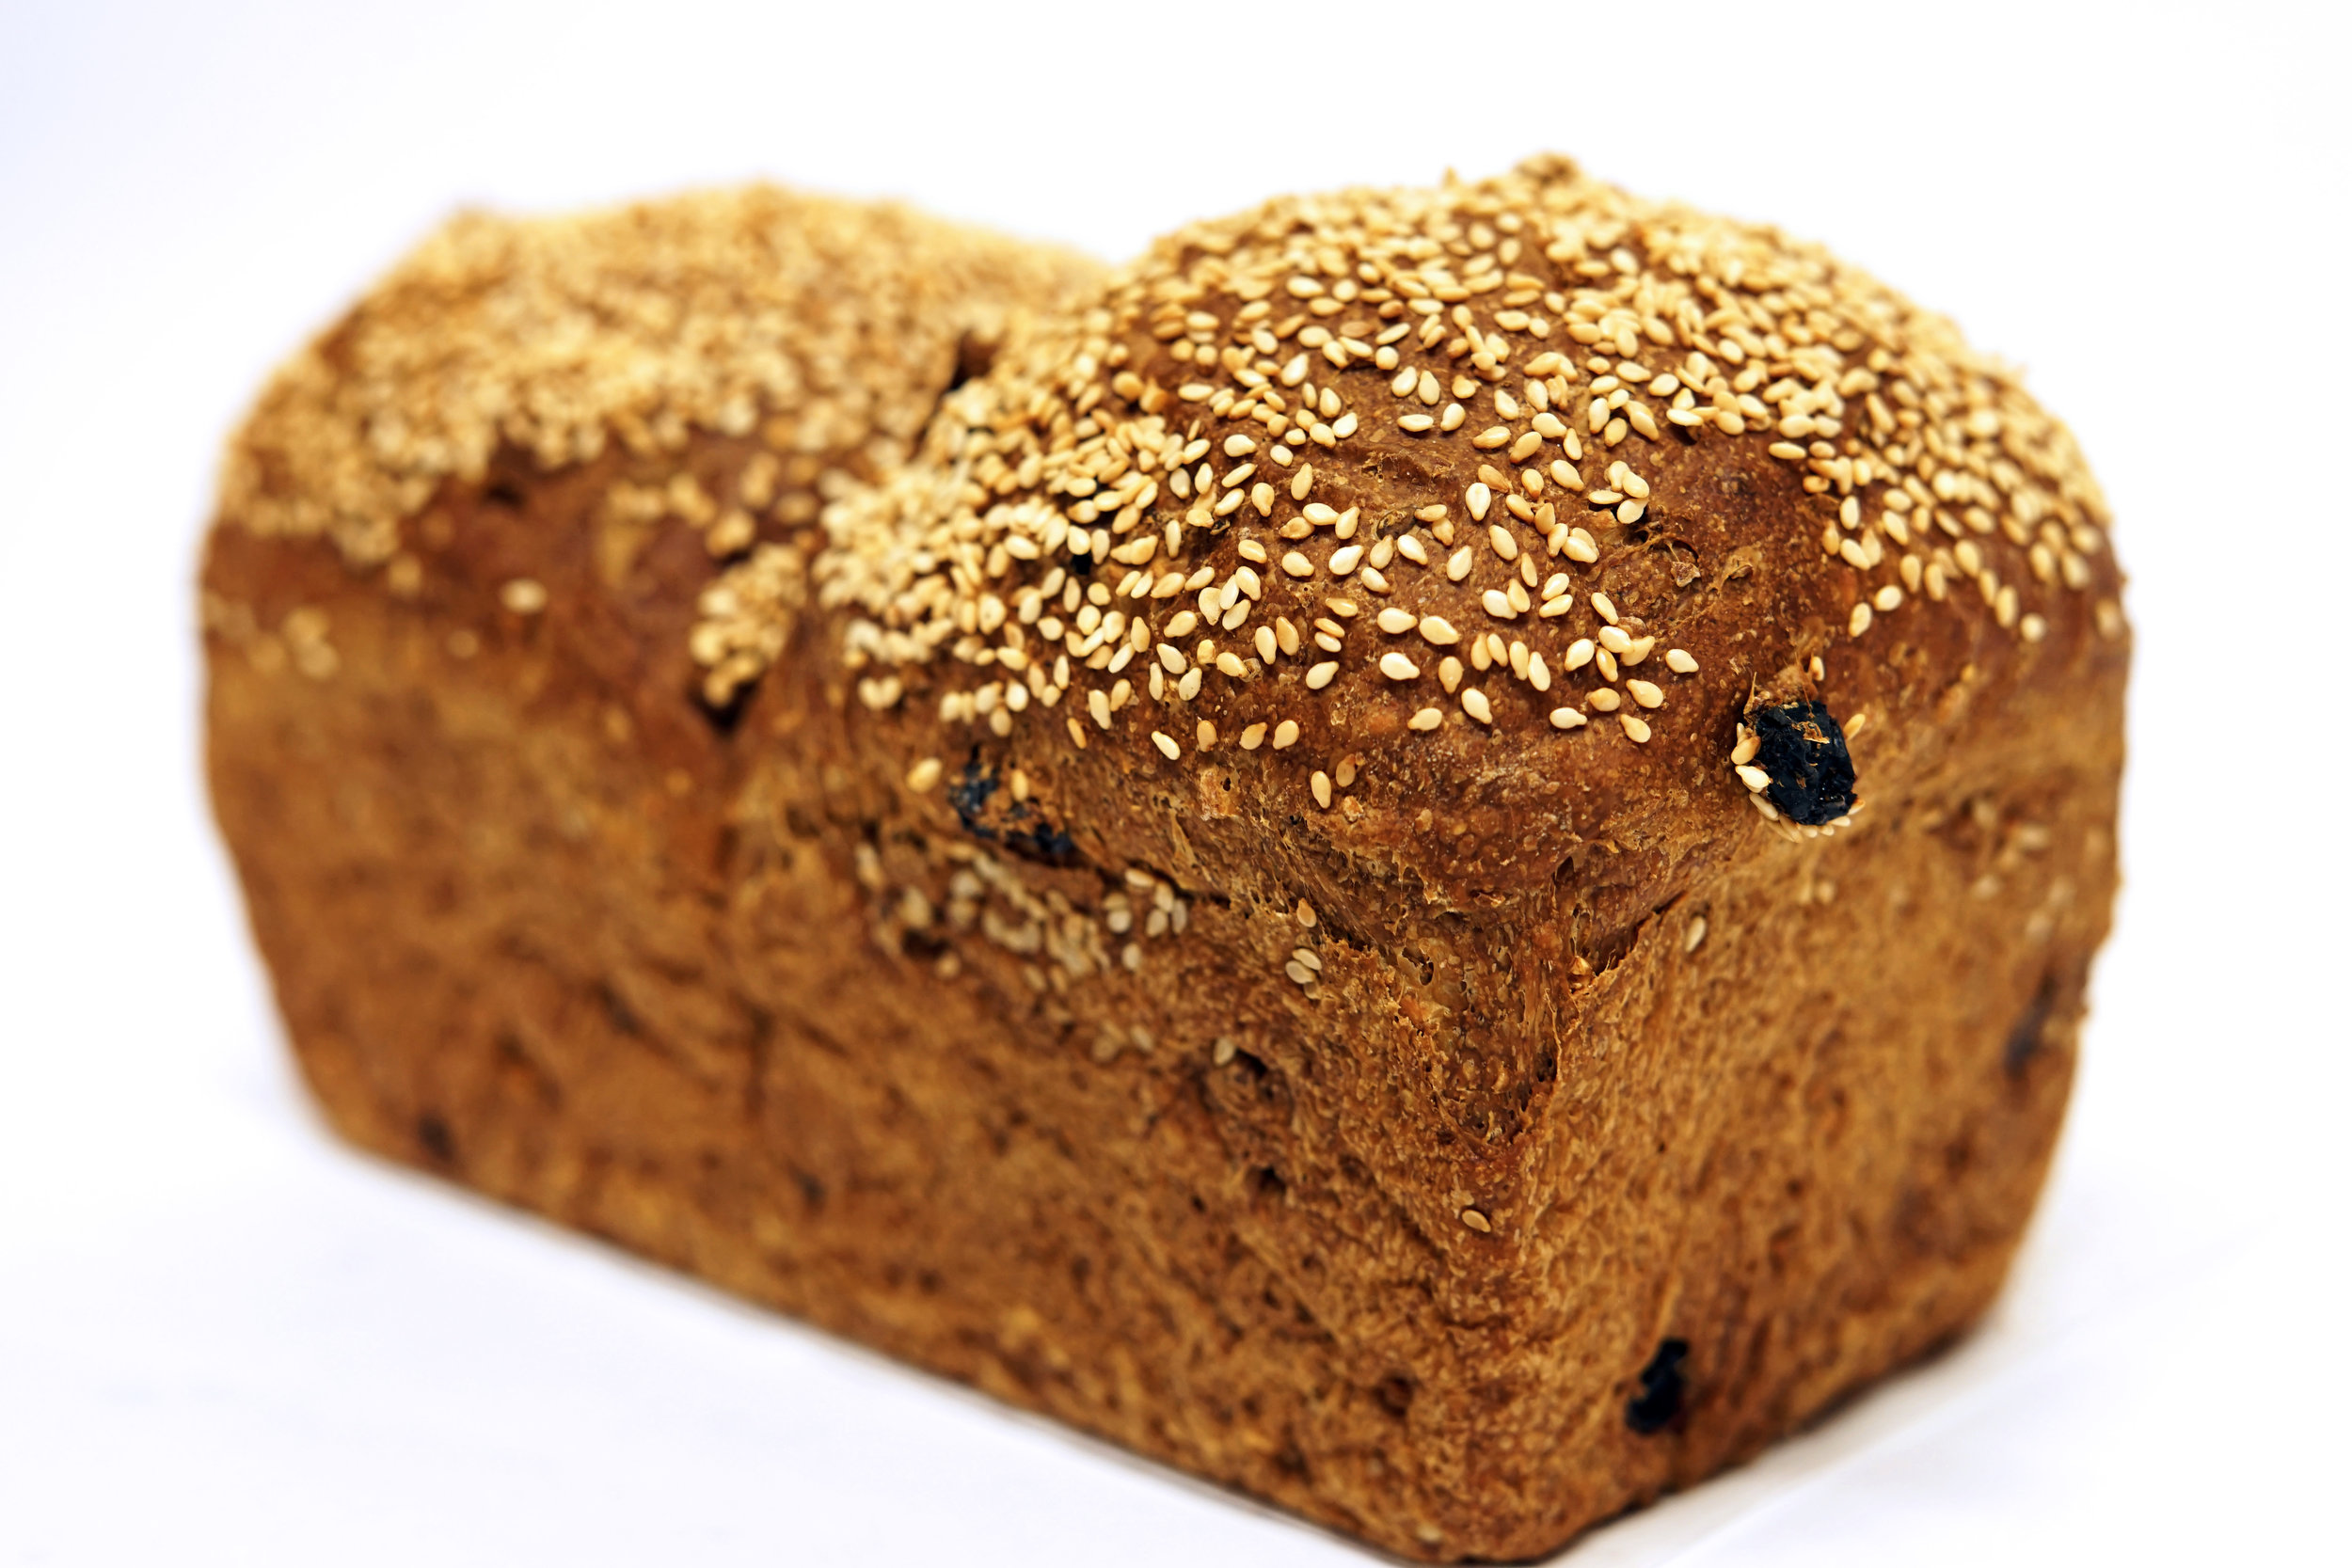 3 Seed Raisin Walnut - Whole wheat and unbleached flour with California raisins and walnuts. Used for our popular turkey sandwich.*Monday to Saturday